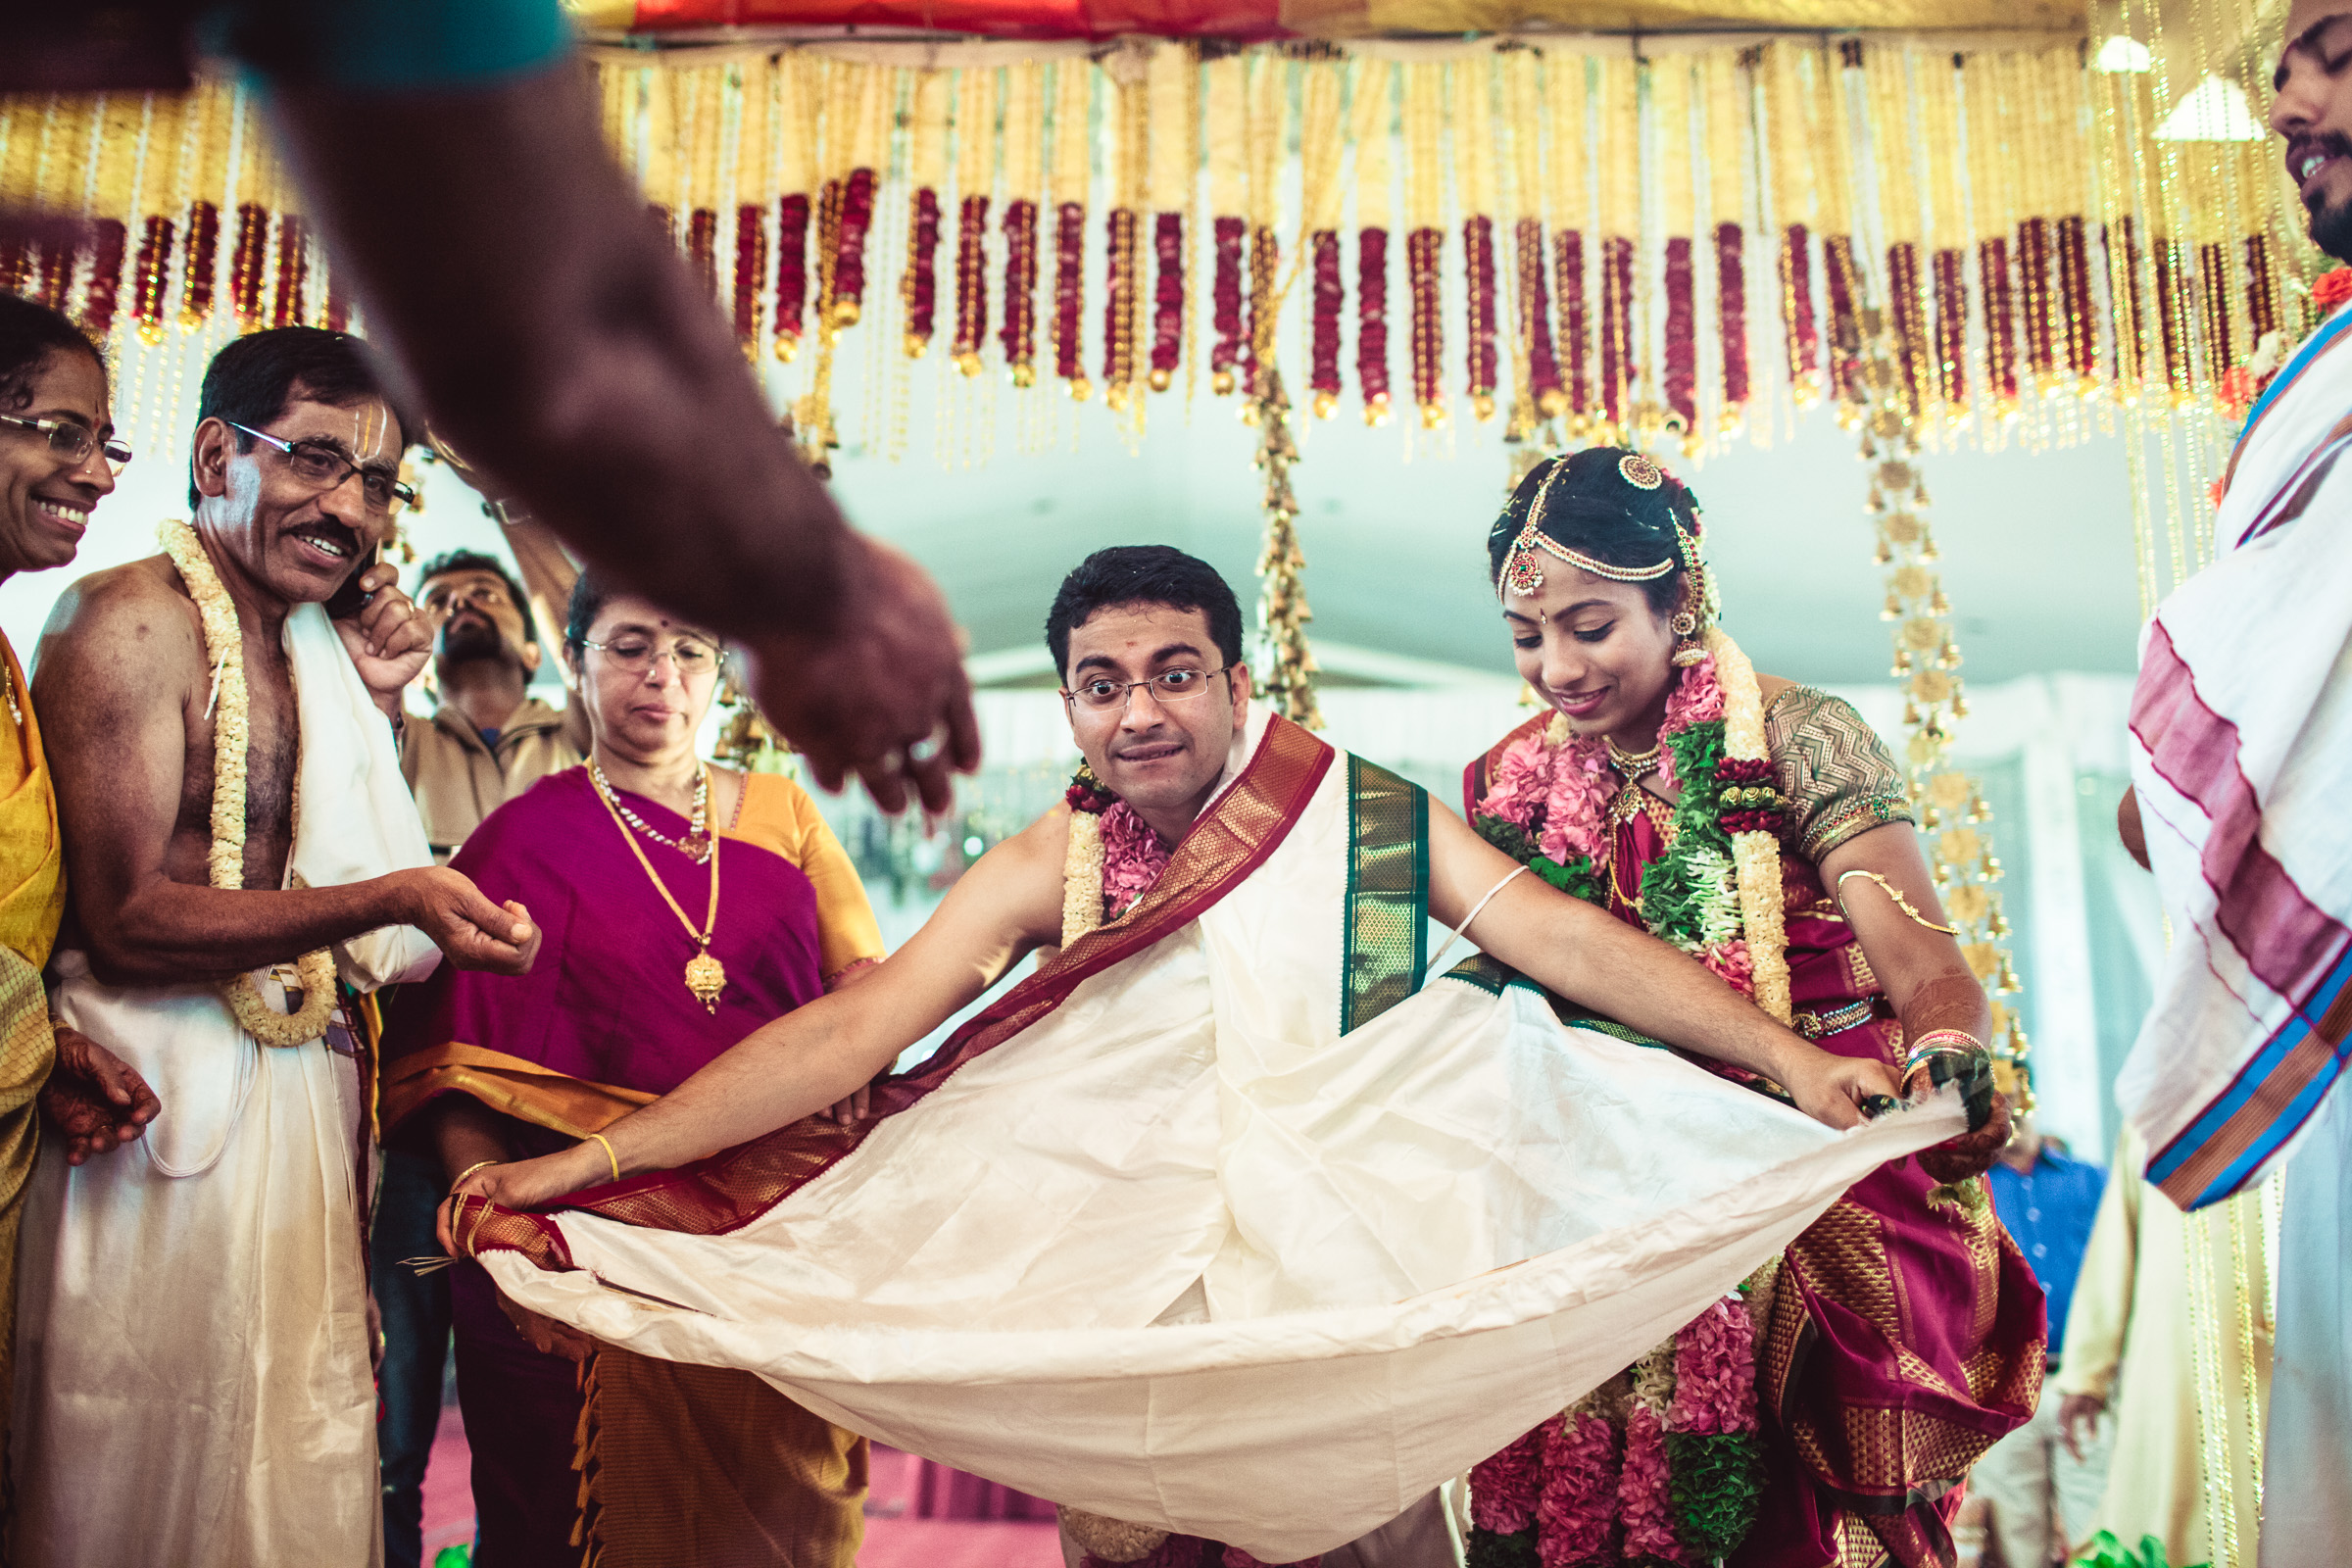 candid-wedding-photography-budget-0001.jpg